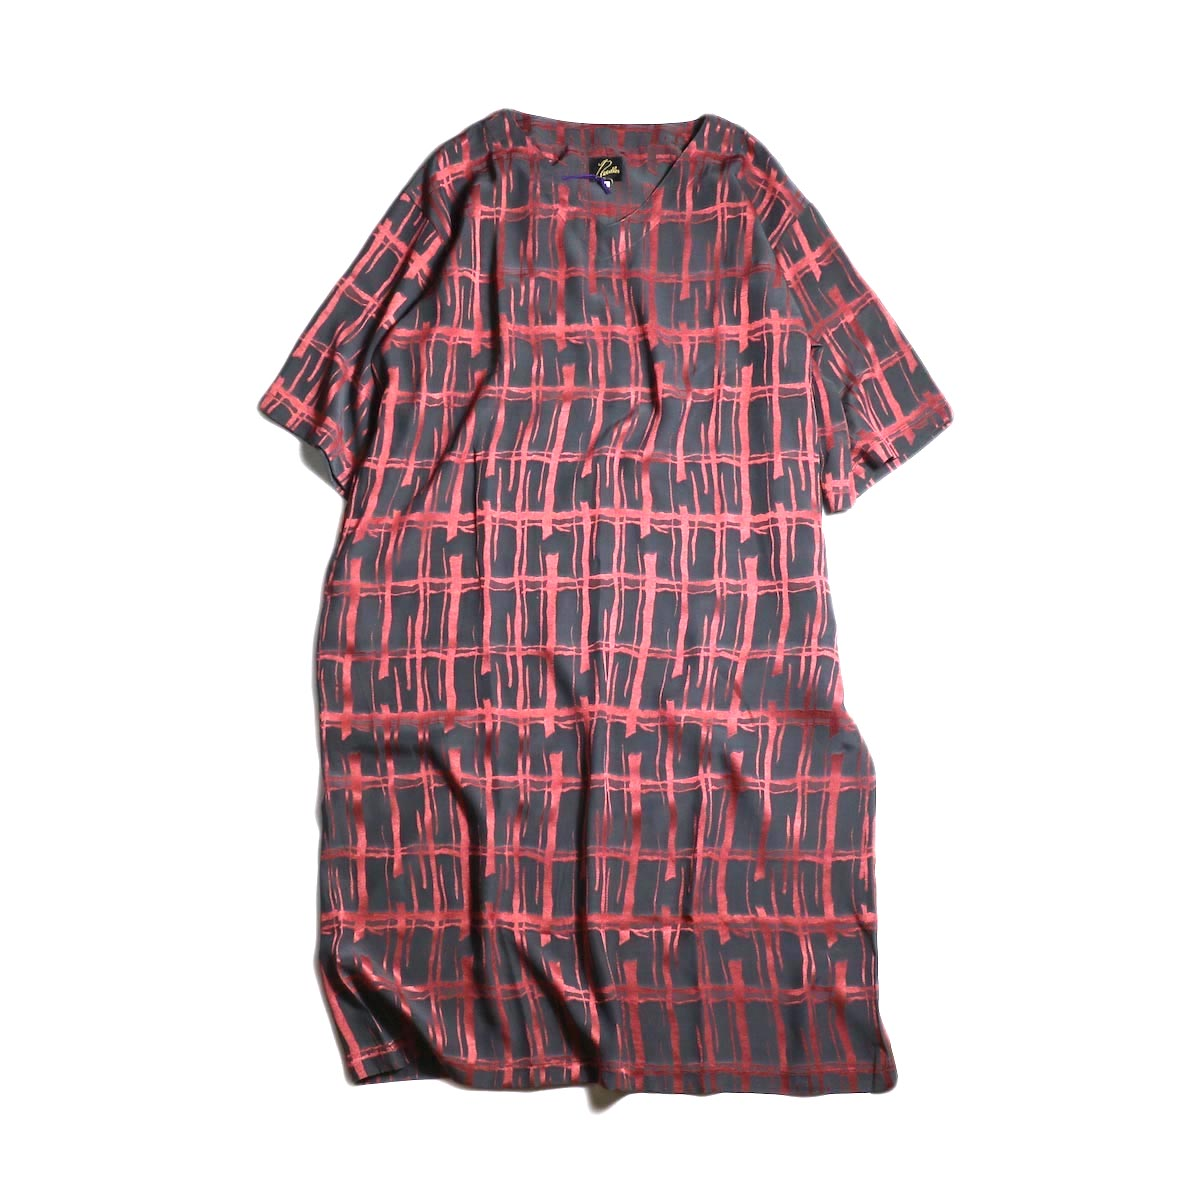 Needles / V Neck Dress-Cu/Ac Jacquard / Plaid (Charcoal)